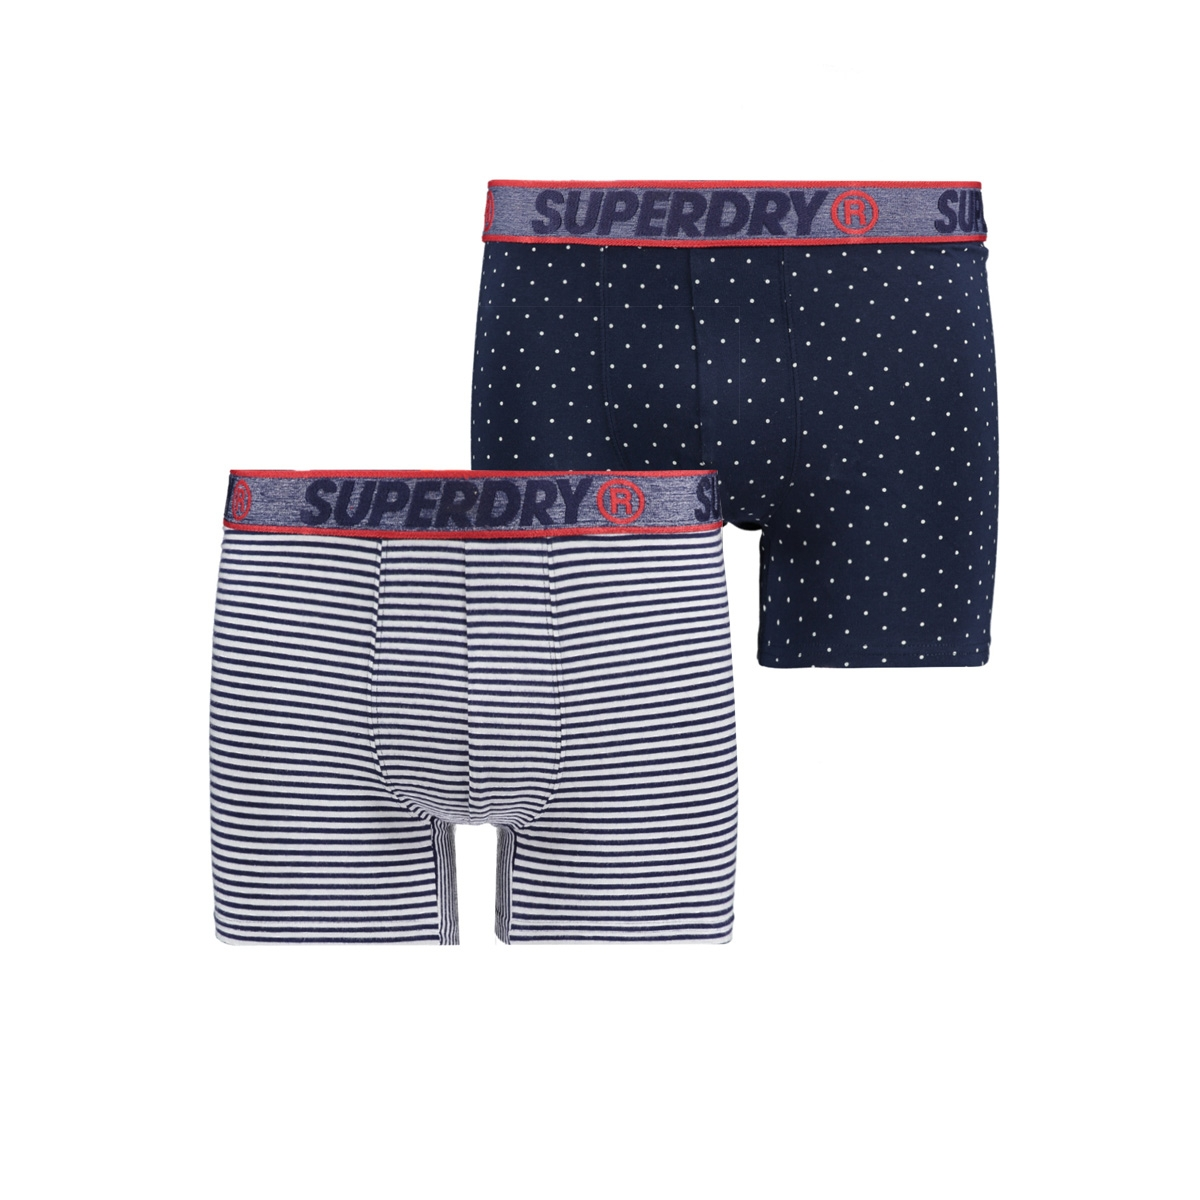 boxer dubble pack m3110001a superdry ondergoed navy aop